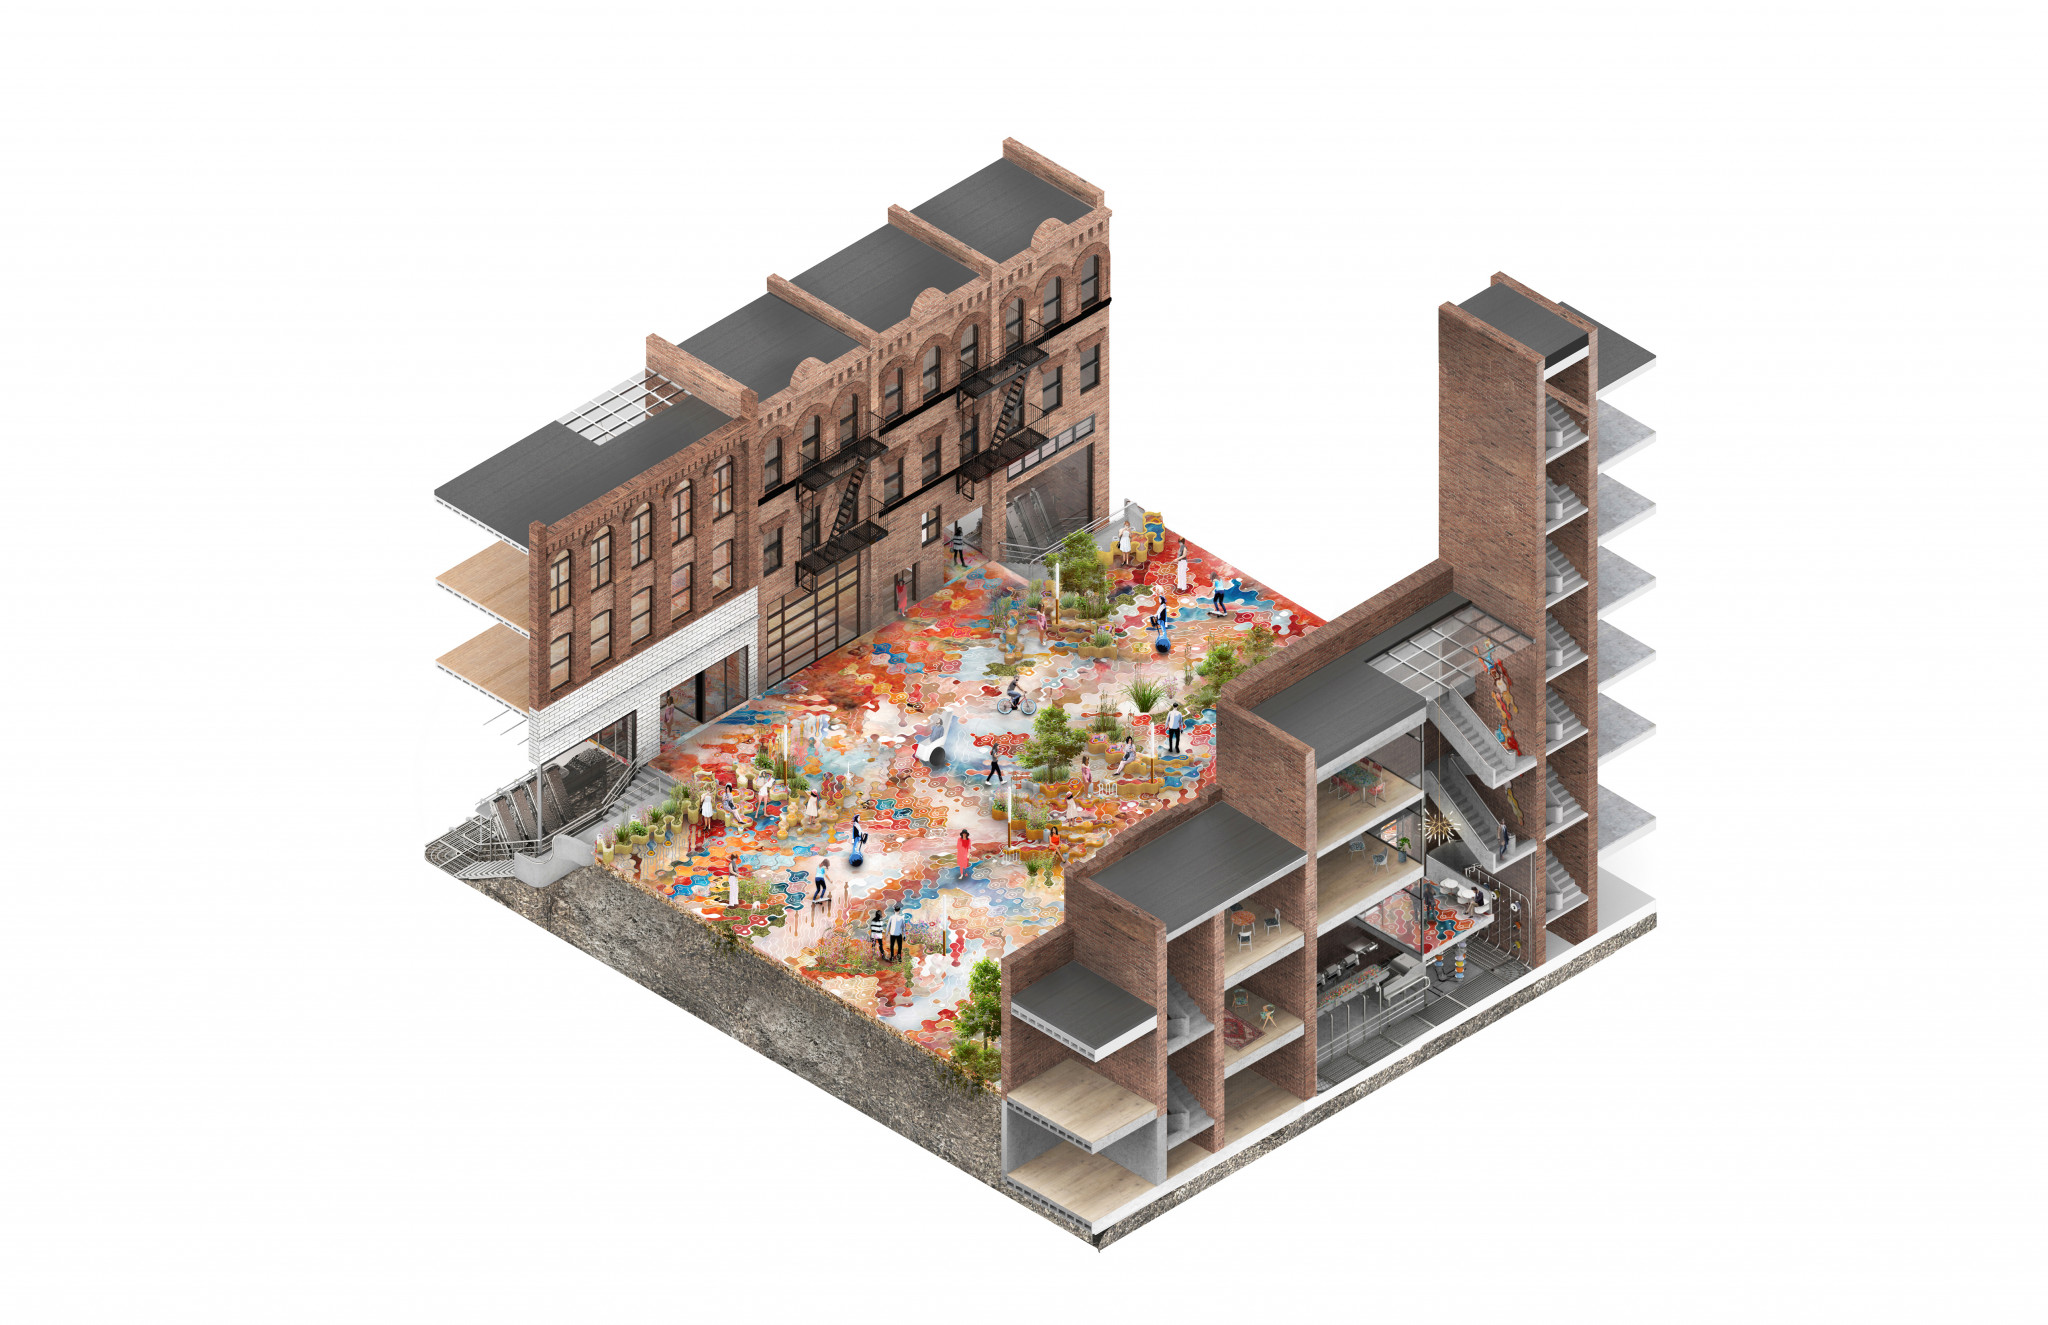 Axonometric view from above of a city block with brownstone townhomes on either side of a colorful pedestrian plaza